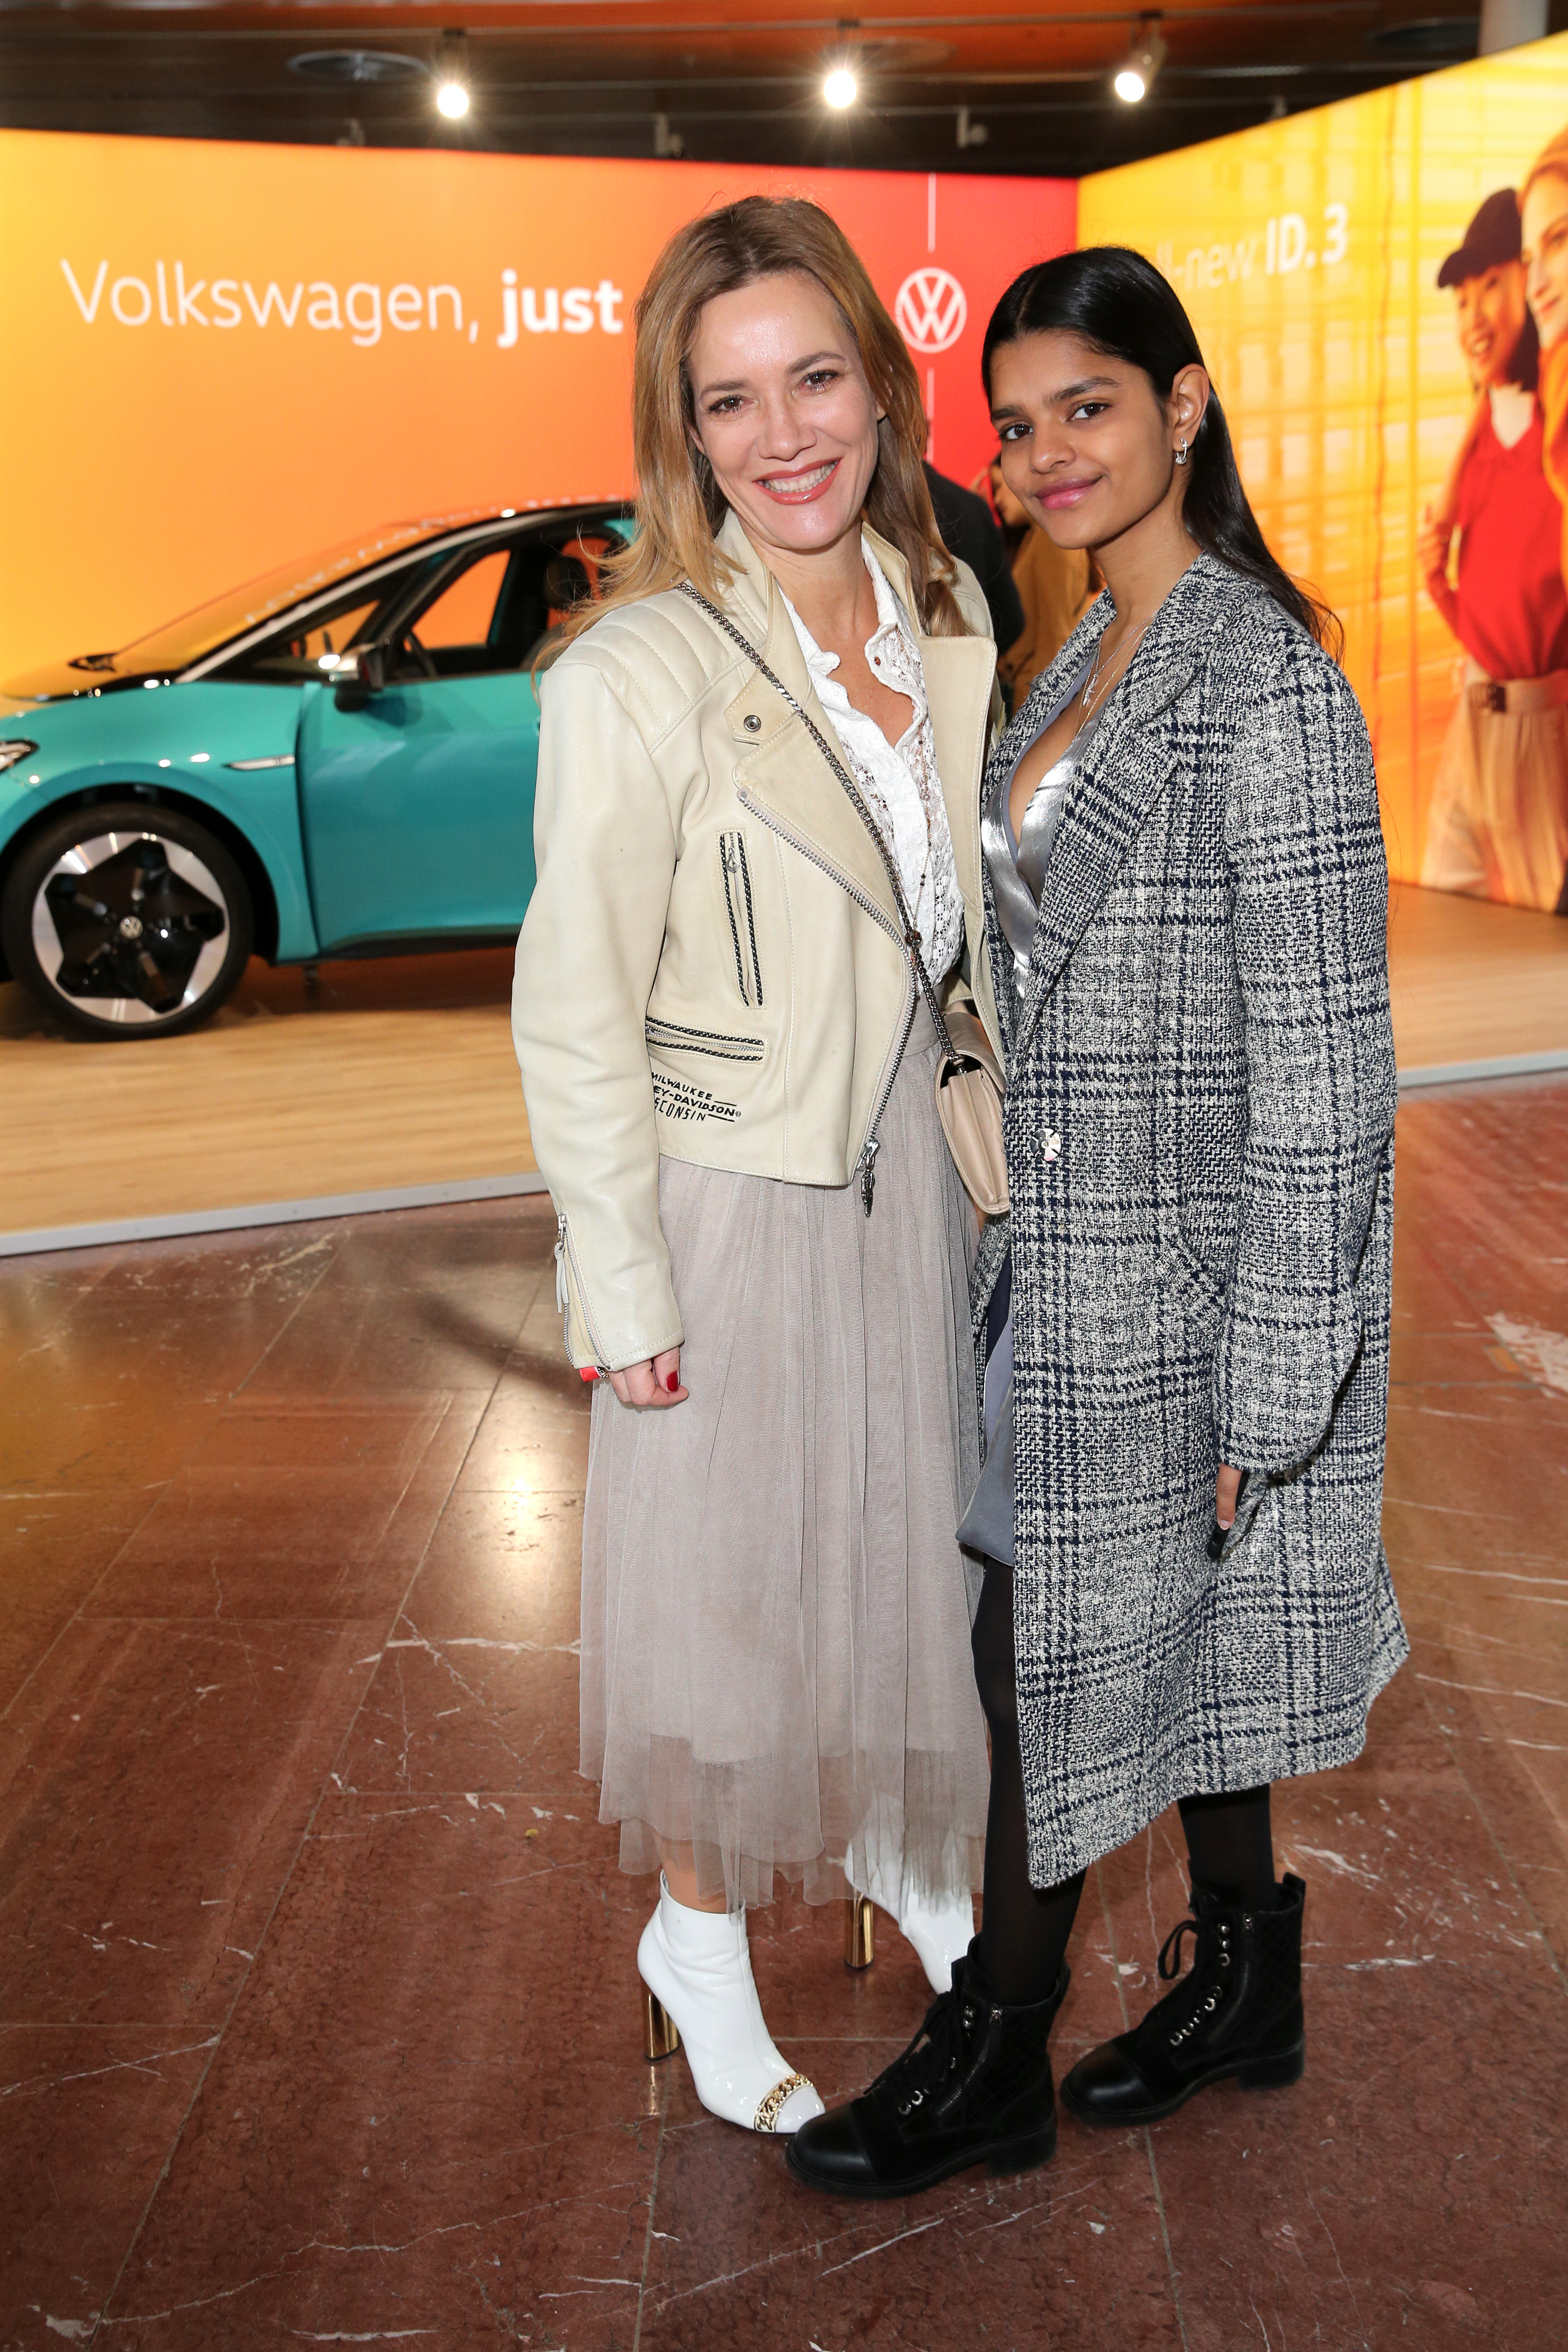 BERLIN, GERMANY - JANUARY 15: Jessica Stockmann and her daughter Nisha Stockmann during the VW at Instyle Lounge event as part of the Berlin Fashion Week Autumn/Winter 2020 at Cafe Moskau on January 15, 2020 in Berlin, Germany. (Photo by Gisela Schober/Getty Images for Volkswagen AG)